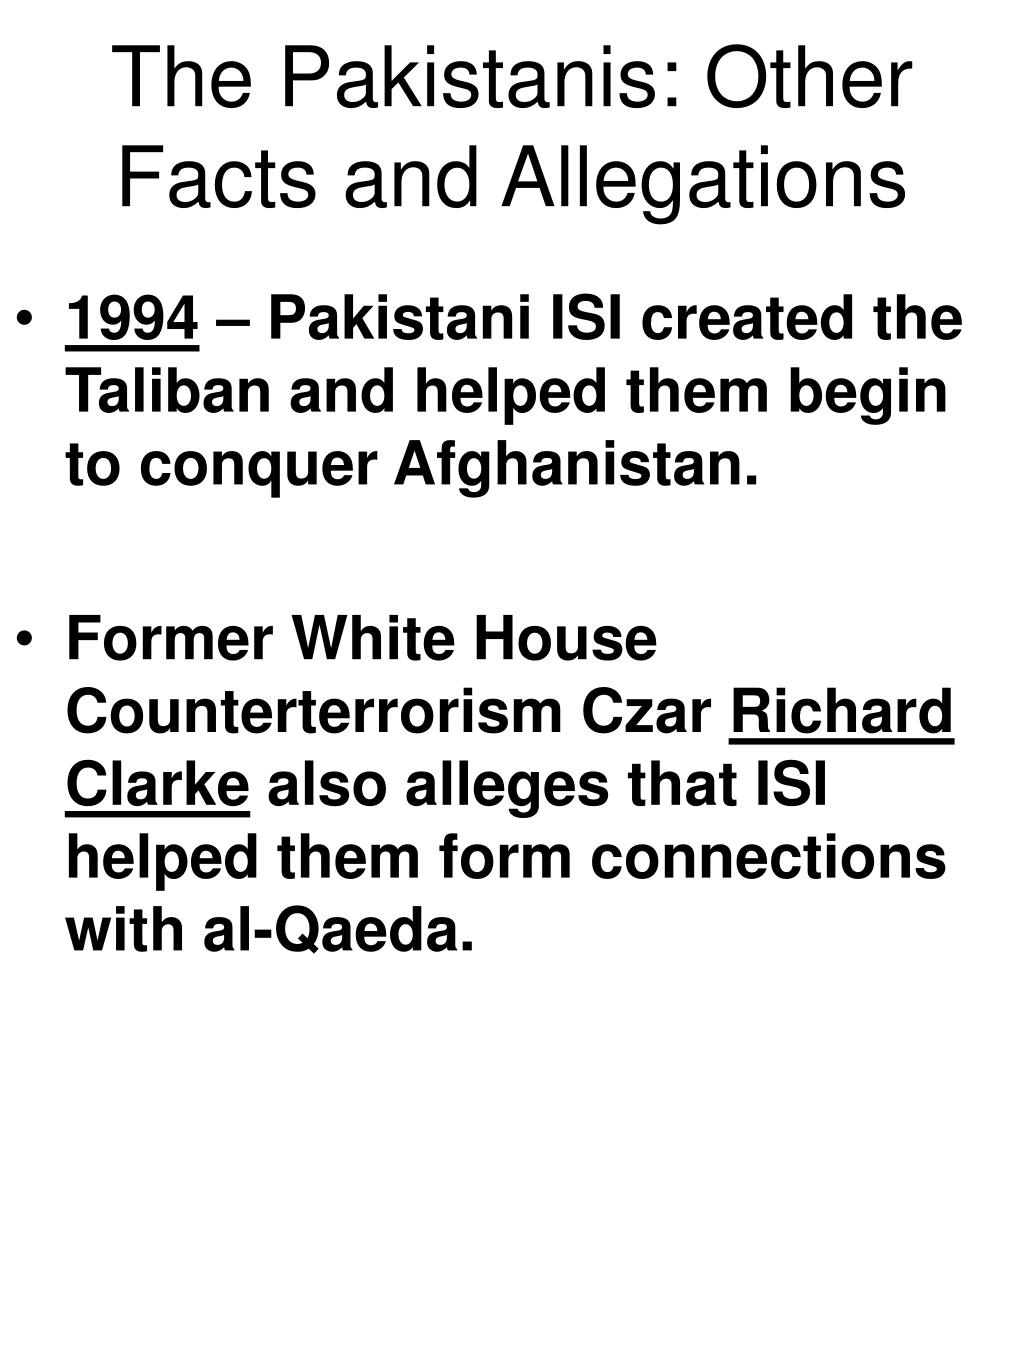 The Pakistanis: Other Facts and Allegations